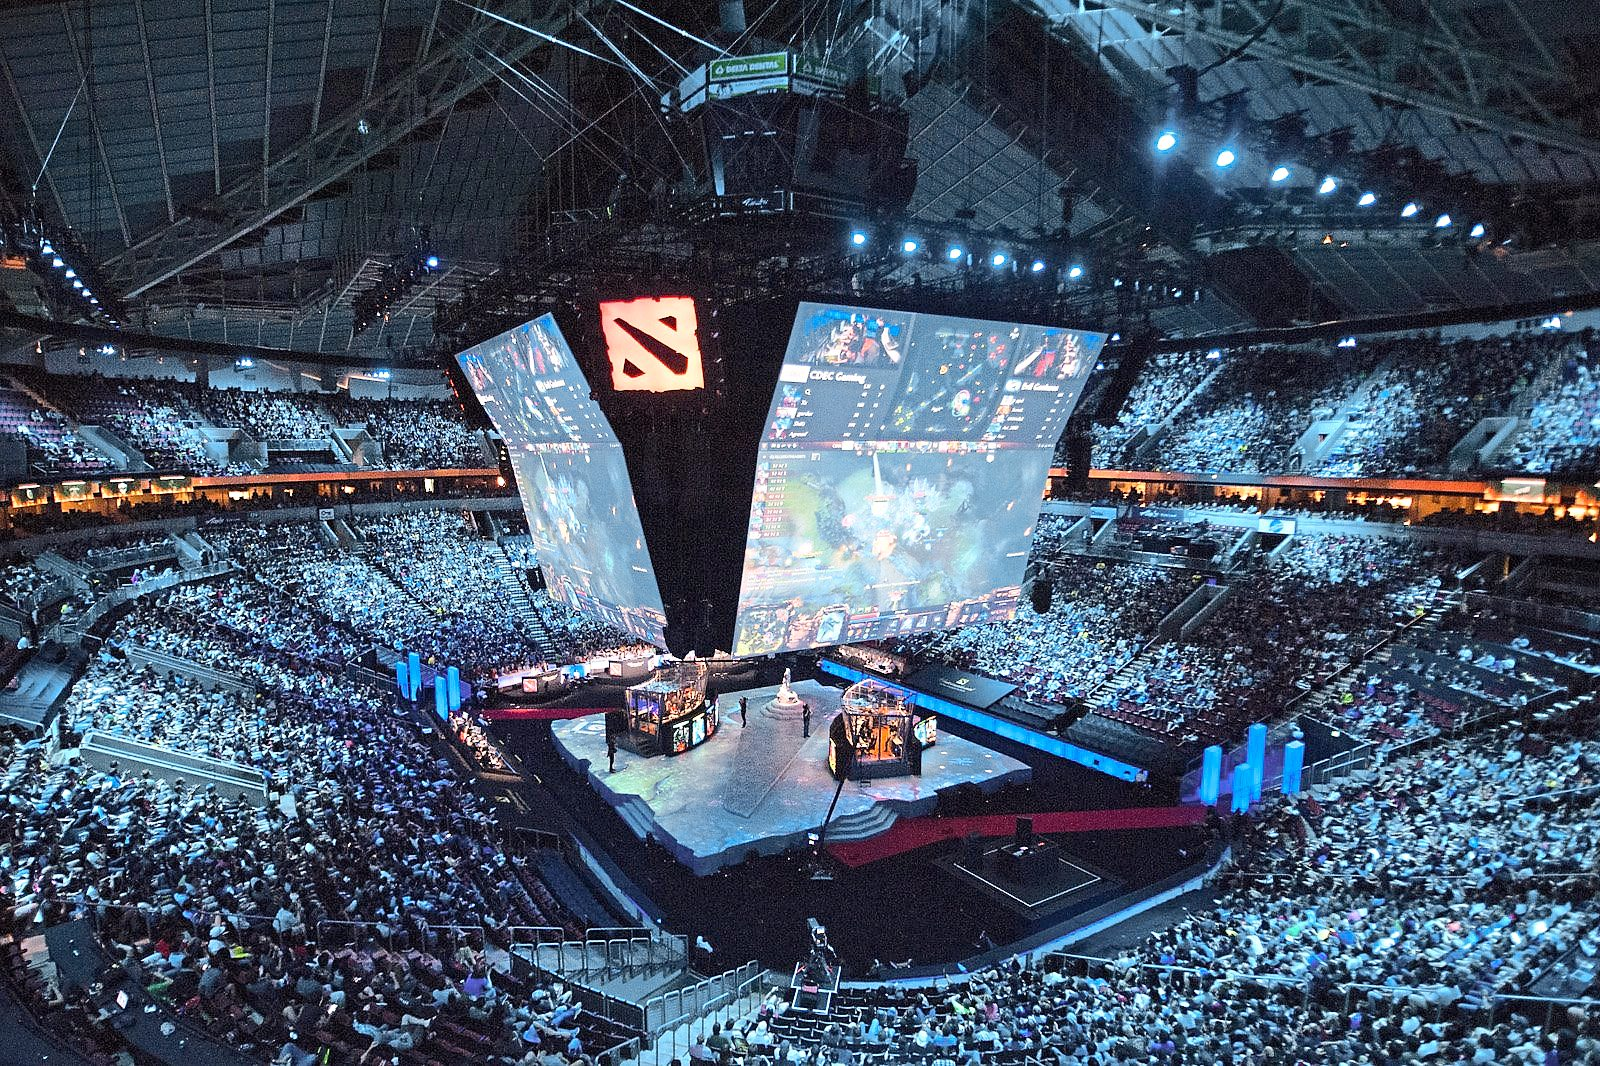 Major eSports tournament offer millions of dollars worth of prize money and are hosted in sell-out arenas - Valve